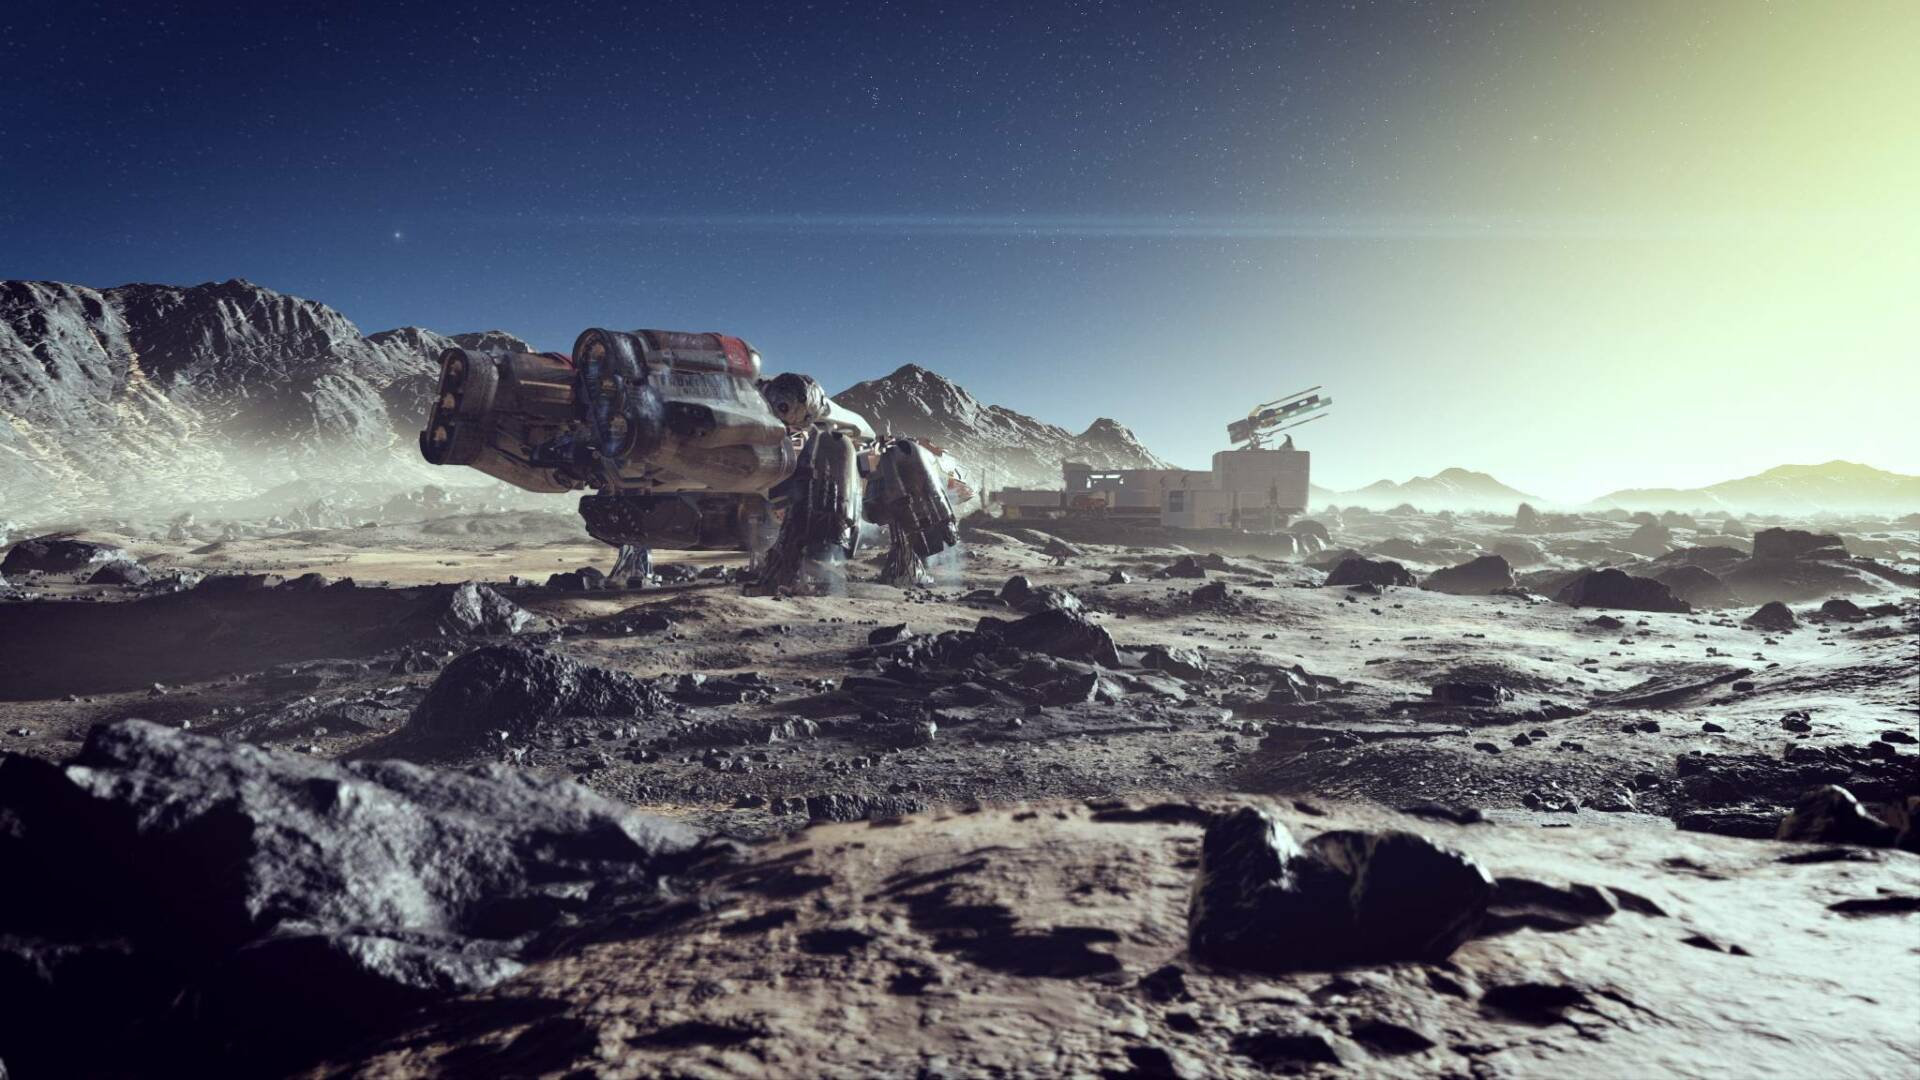 Starfield is an Xbox exclusive and Pete Hines apologizes to PS5 fans